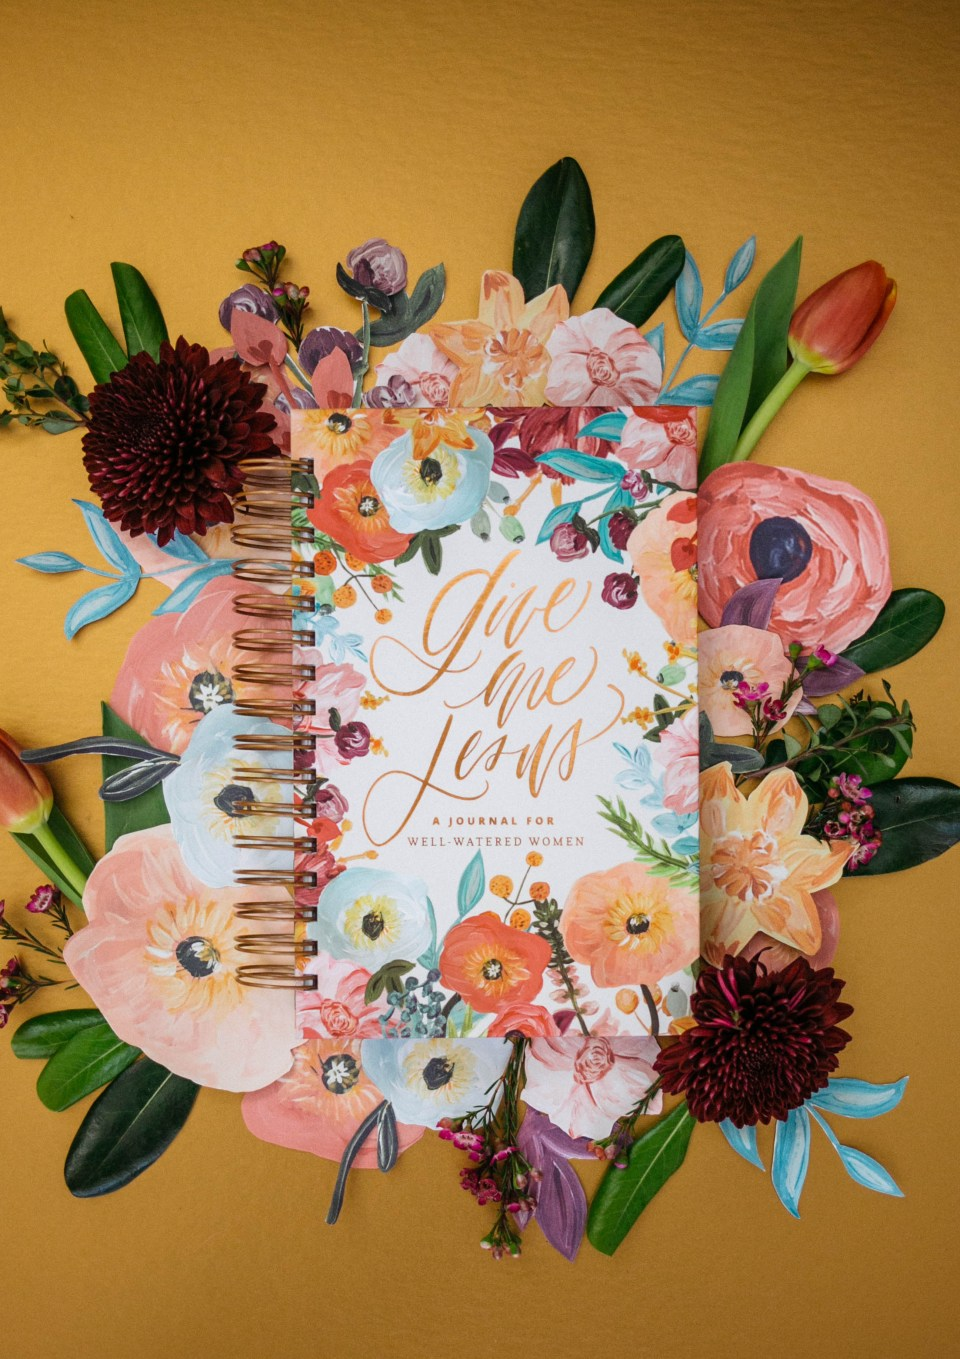 Give Me Jesus Journal by Well-Watered Women